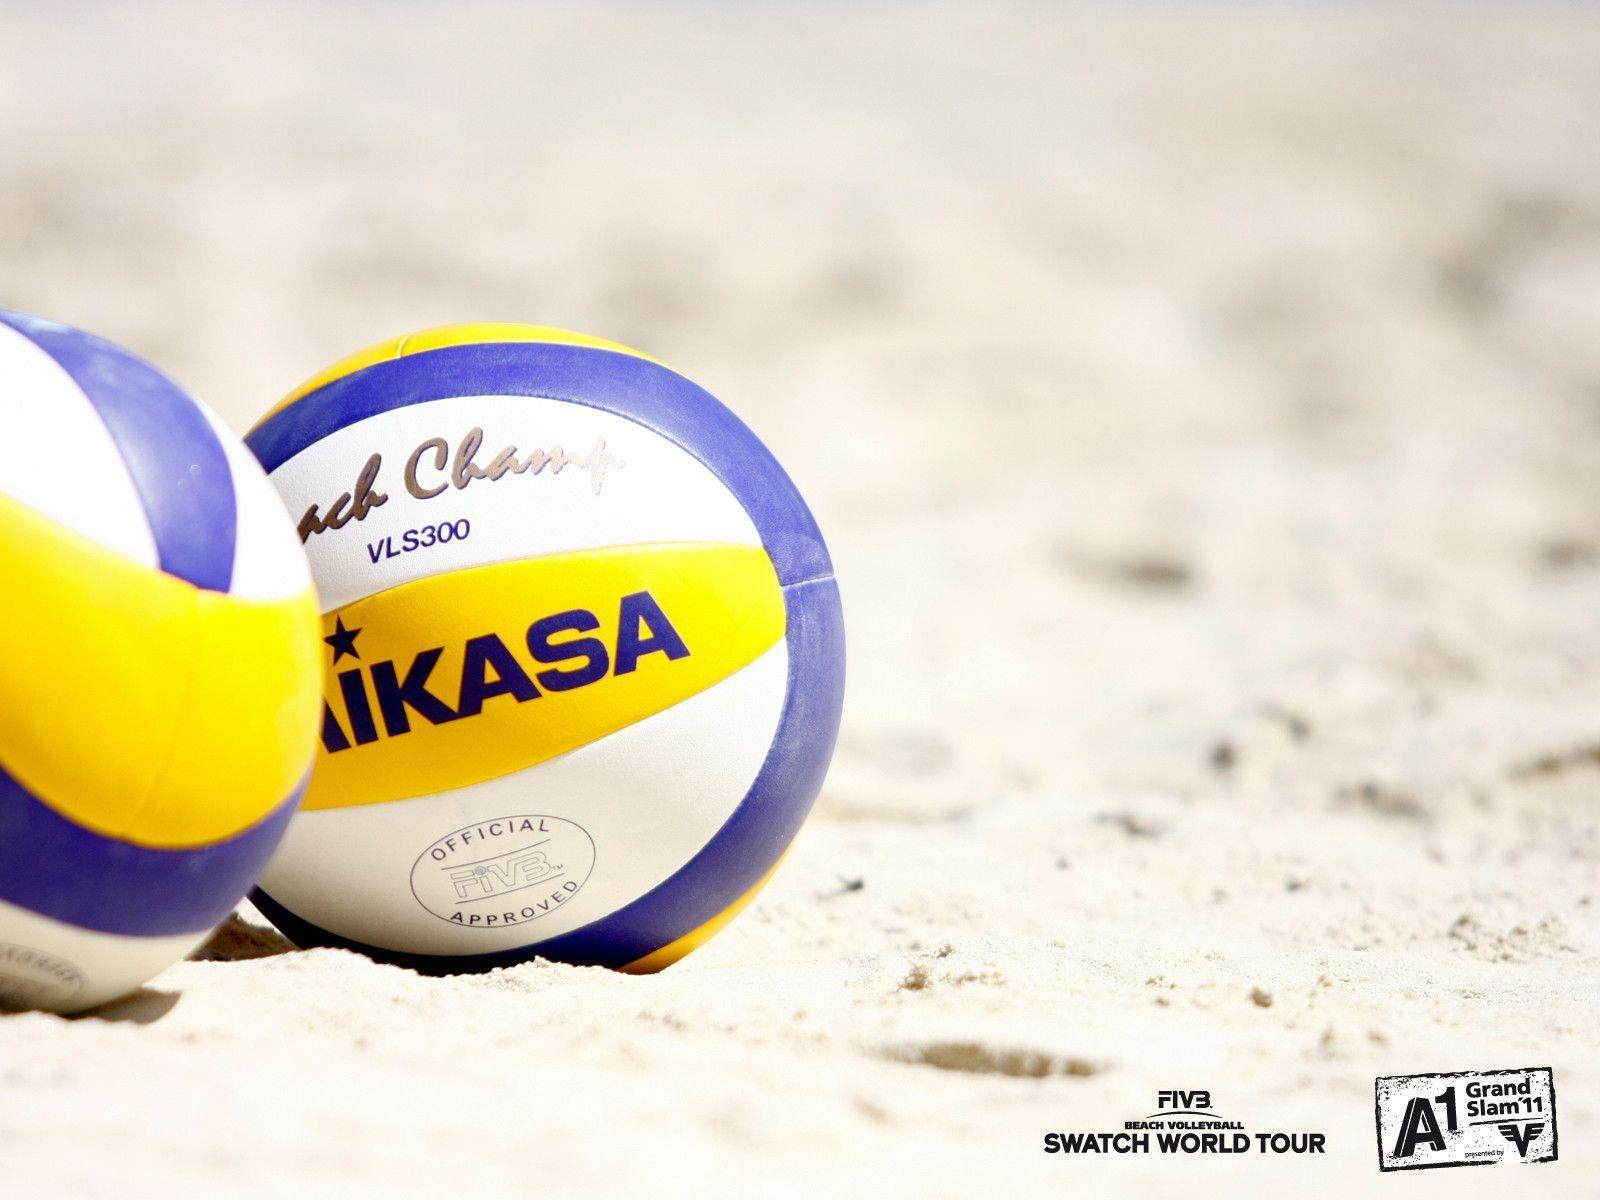 volleyball wallpapers hd backgrounds, images, pics, photos free